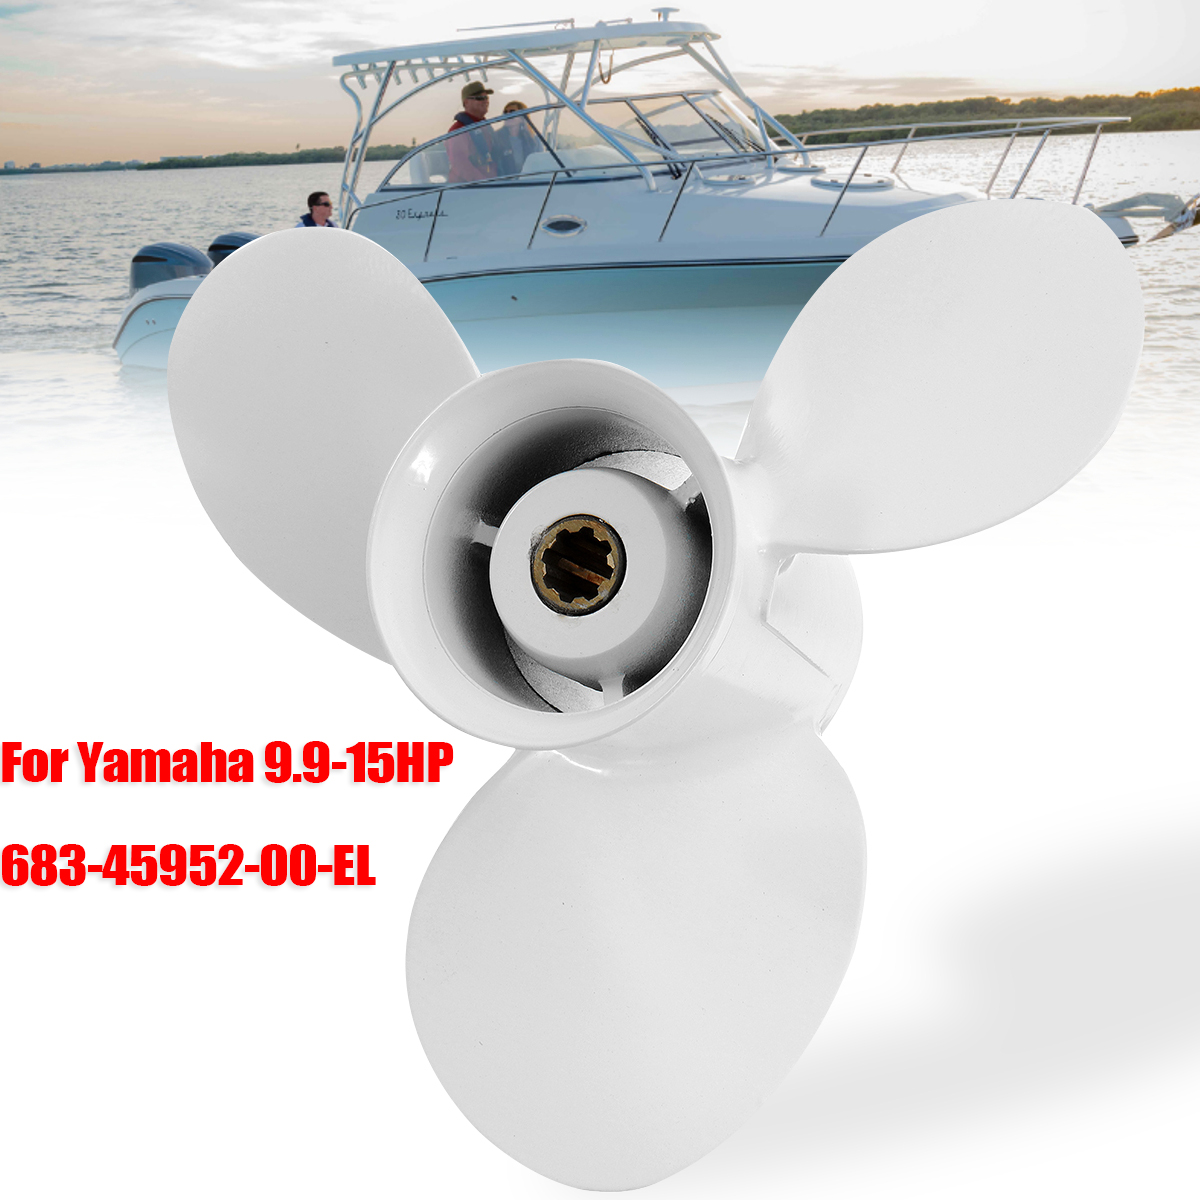 United 683-45952-00-el 9 1/4 X 9 3/4 Aluminum Alloy Boat Outboard Propeller For Yamaha 9.9-15hp R Rotation 3 Blades 8 Spline Tooths Back To Search Resultsautomobiles & Motorcycles Marine Propeller